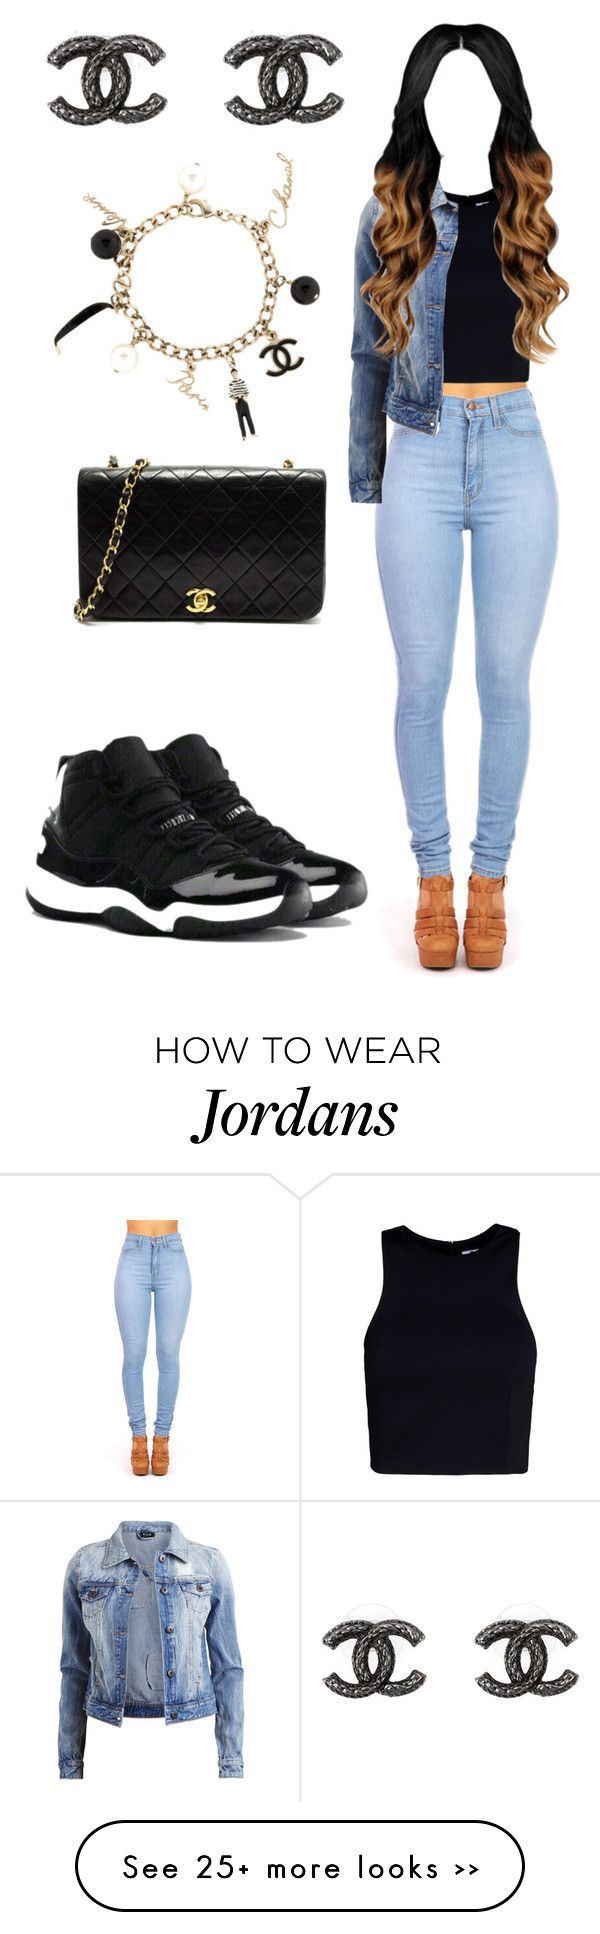 shoes black black and white jordans nike wifebeater